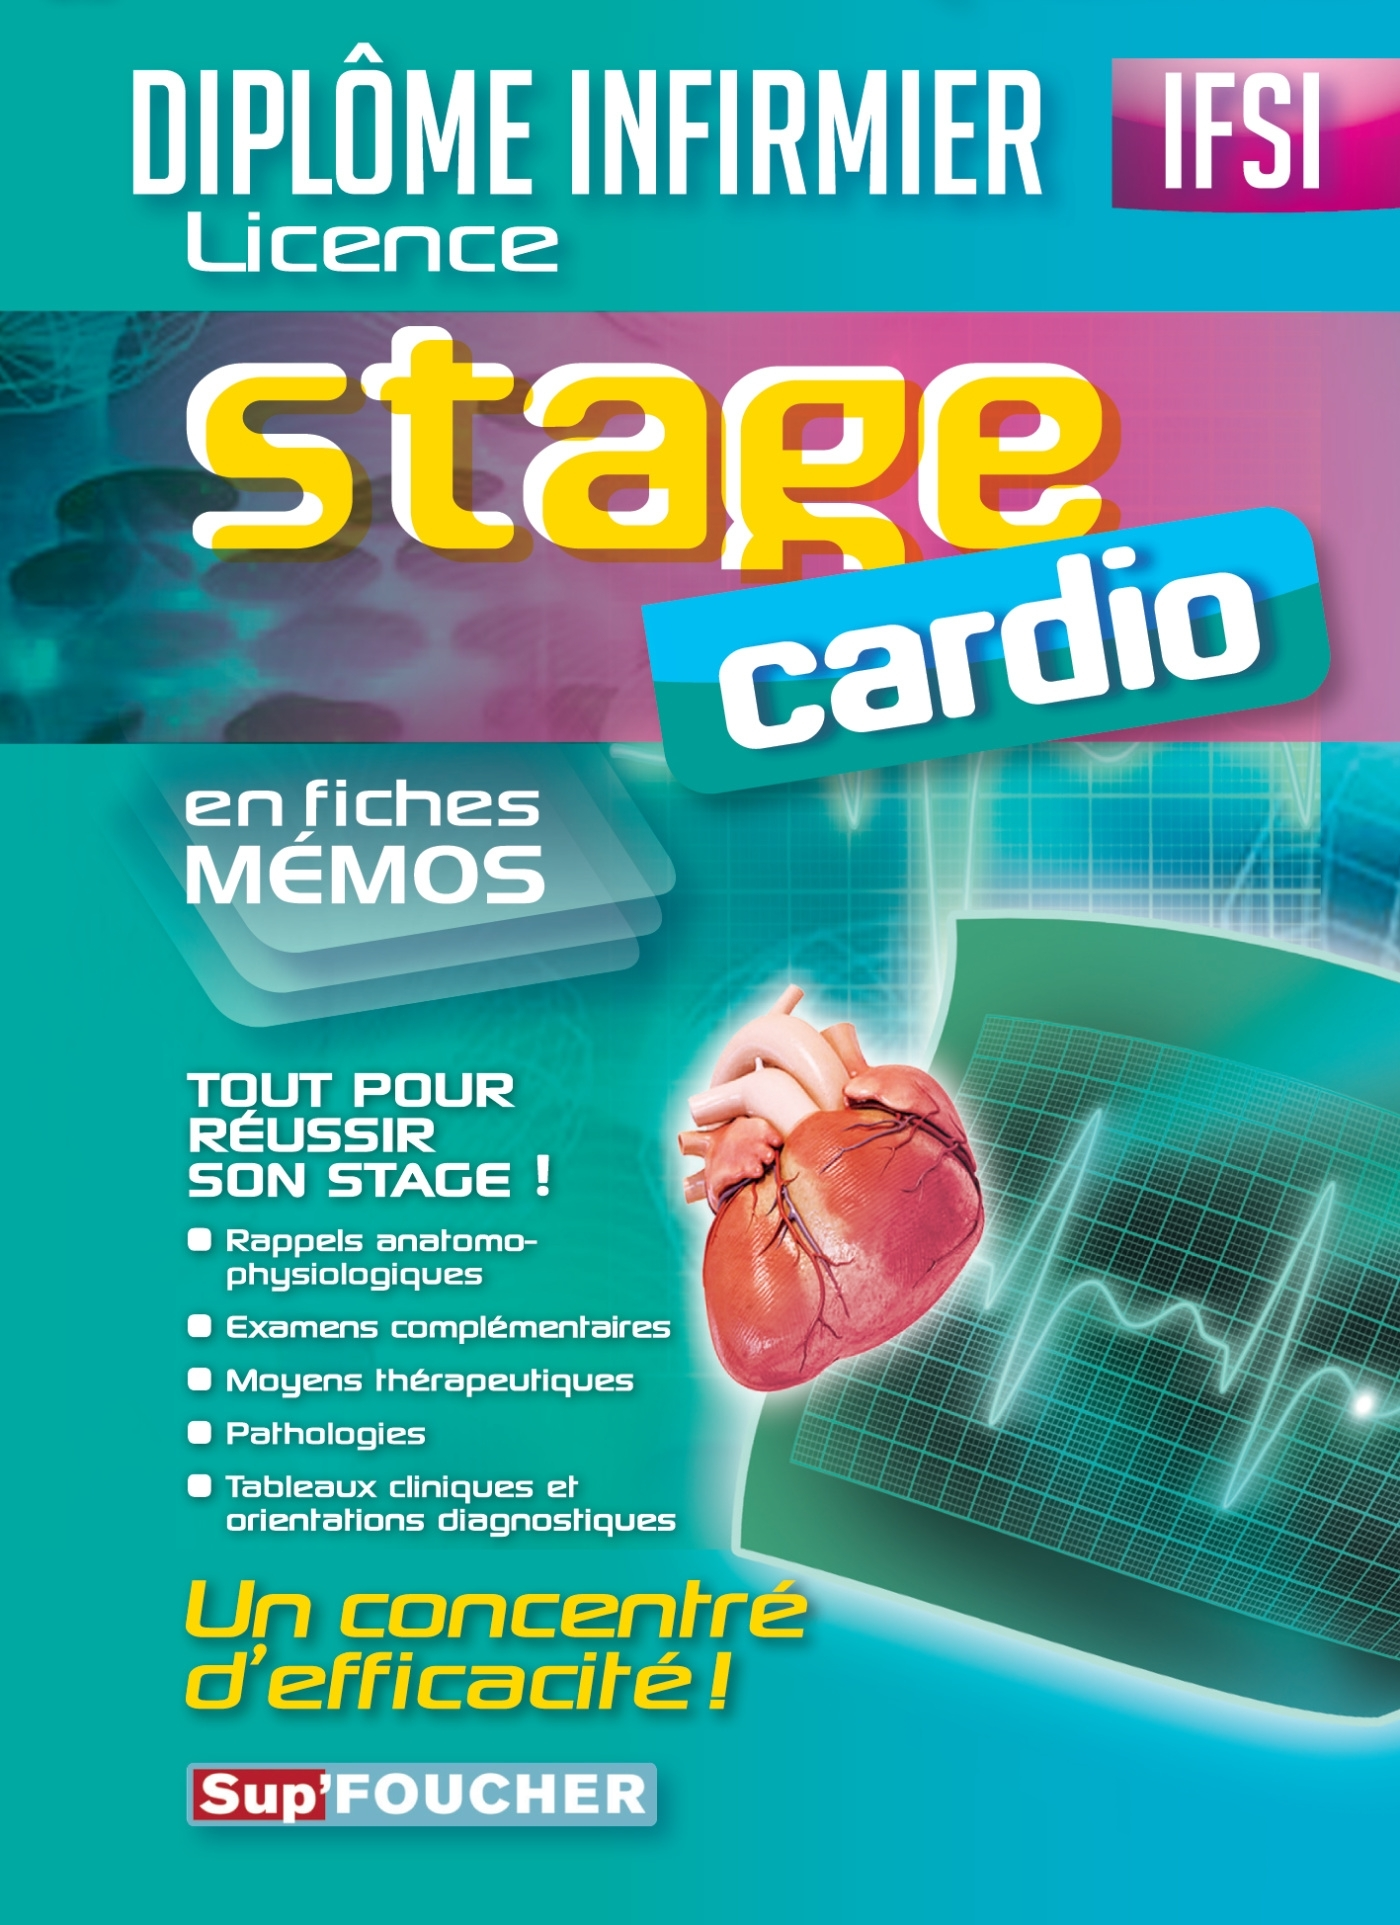 IFSI STAGE CARDIOLOGIE - DIPLOME INFIRMIER